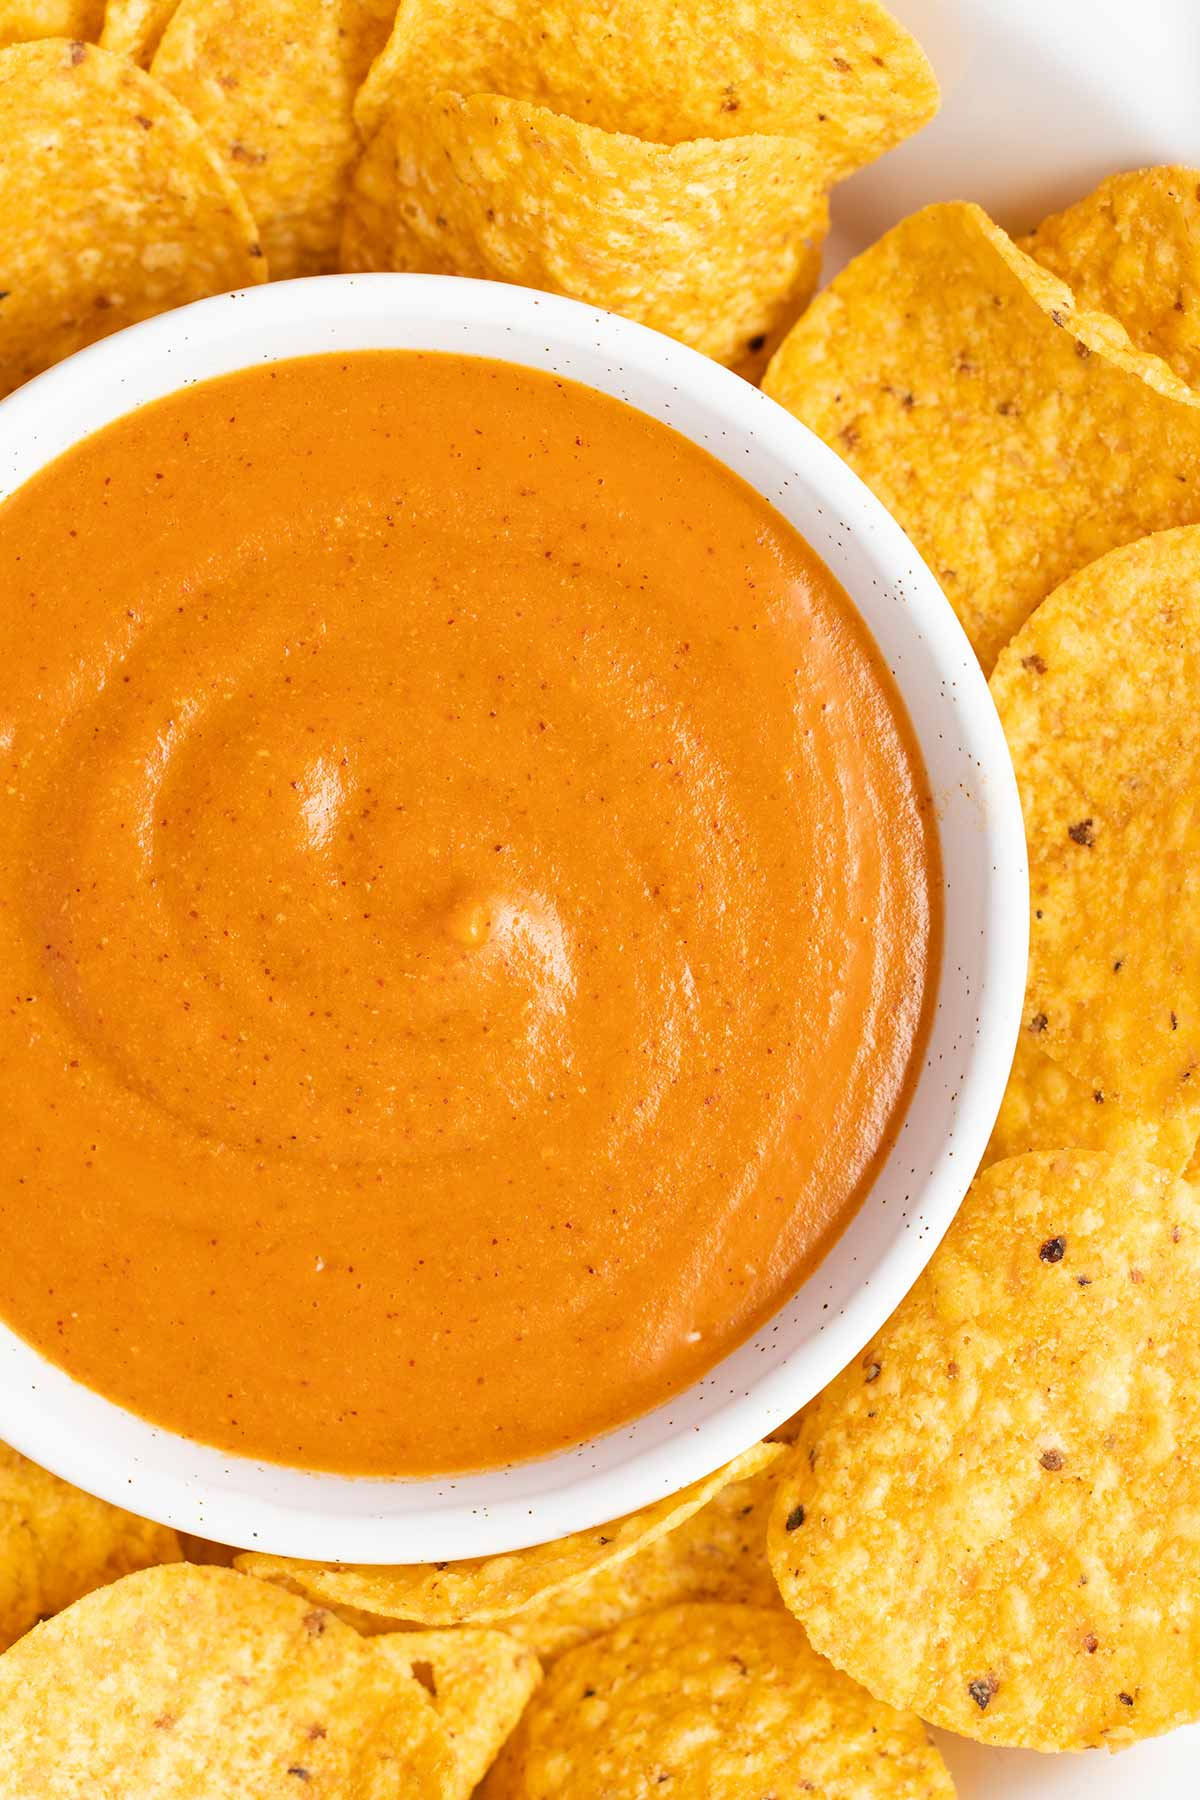 A bowl of vegan nacho cheese surrounded by round tortilla chips.